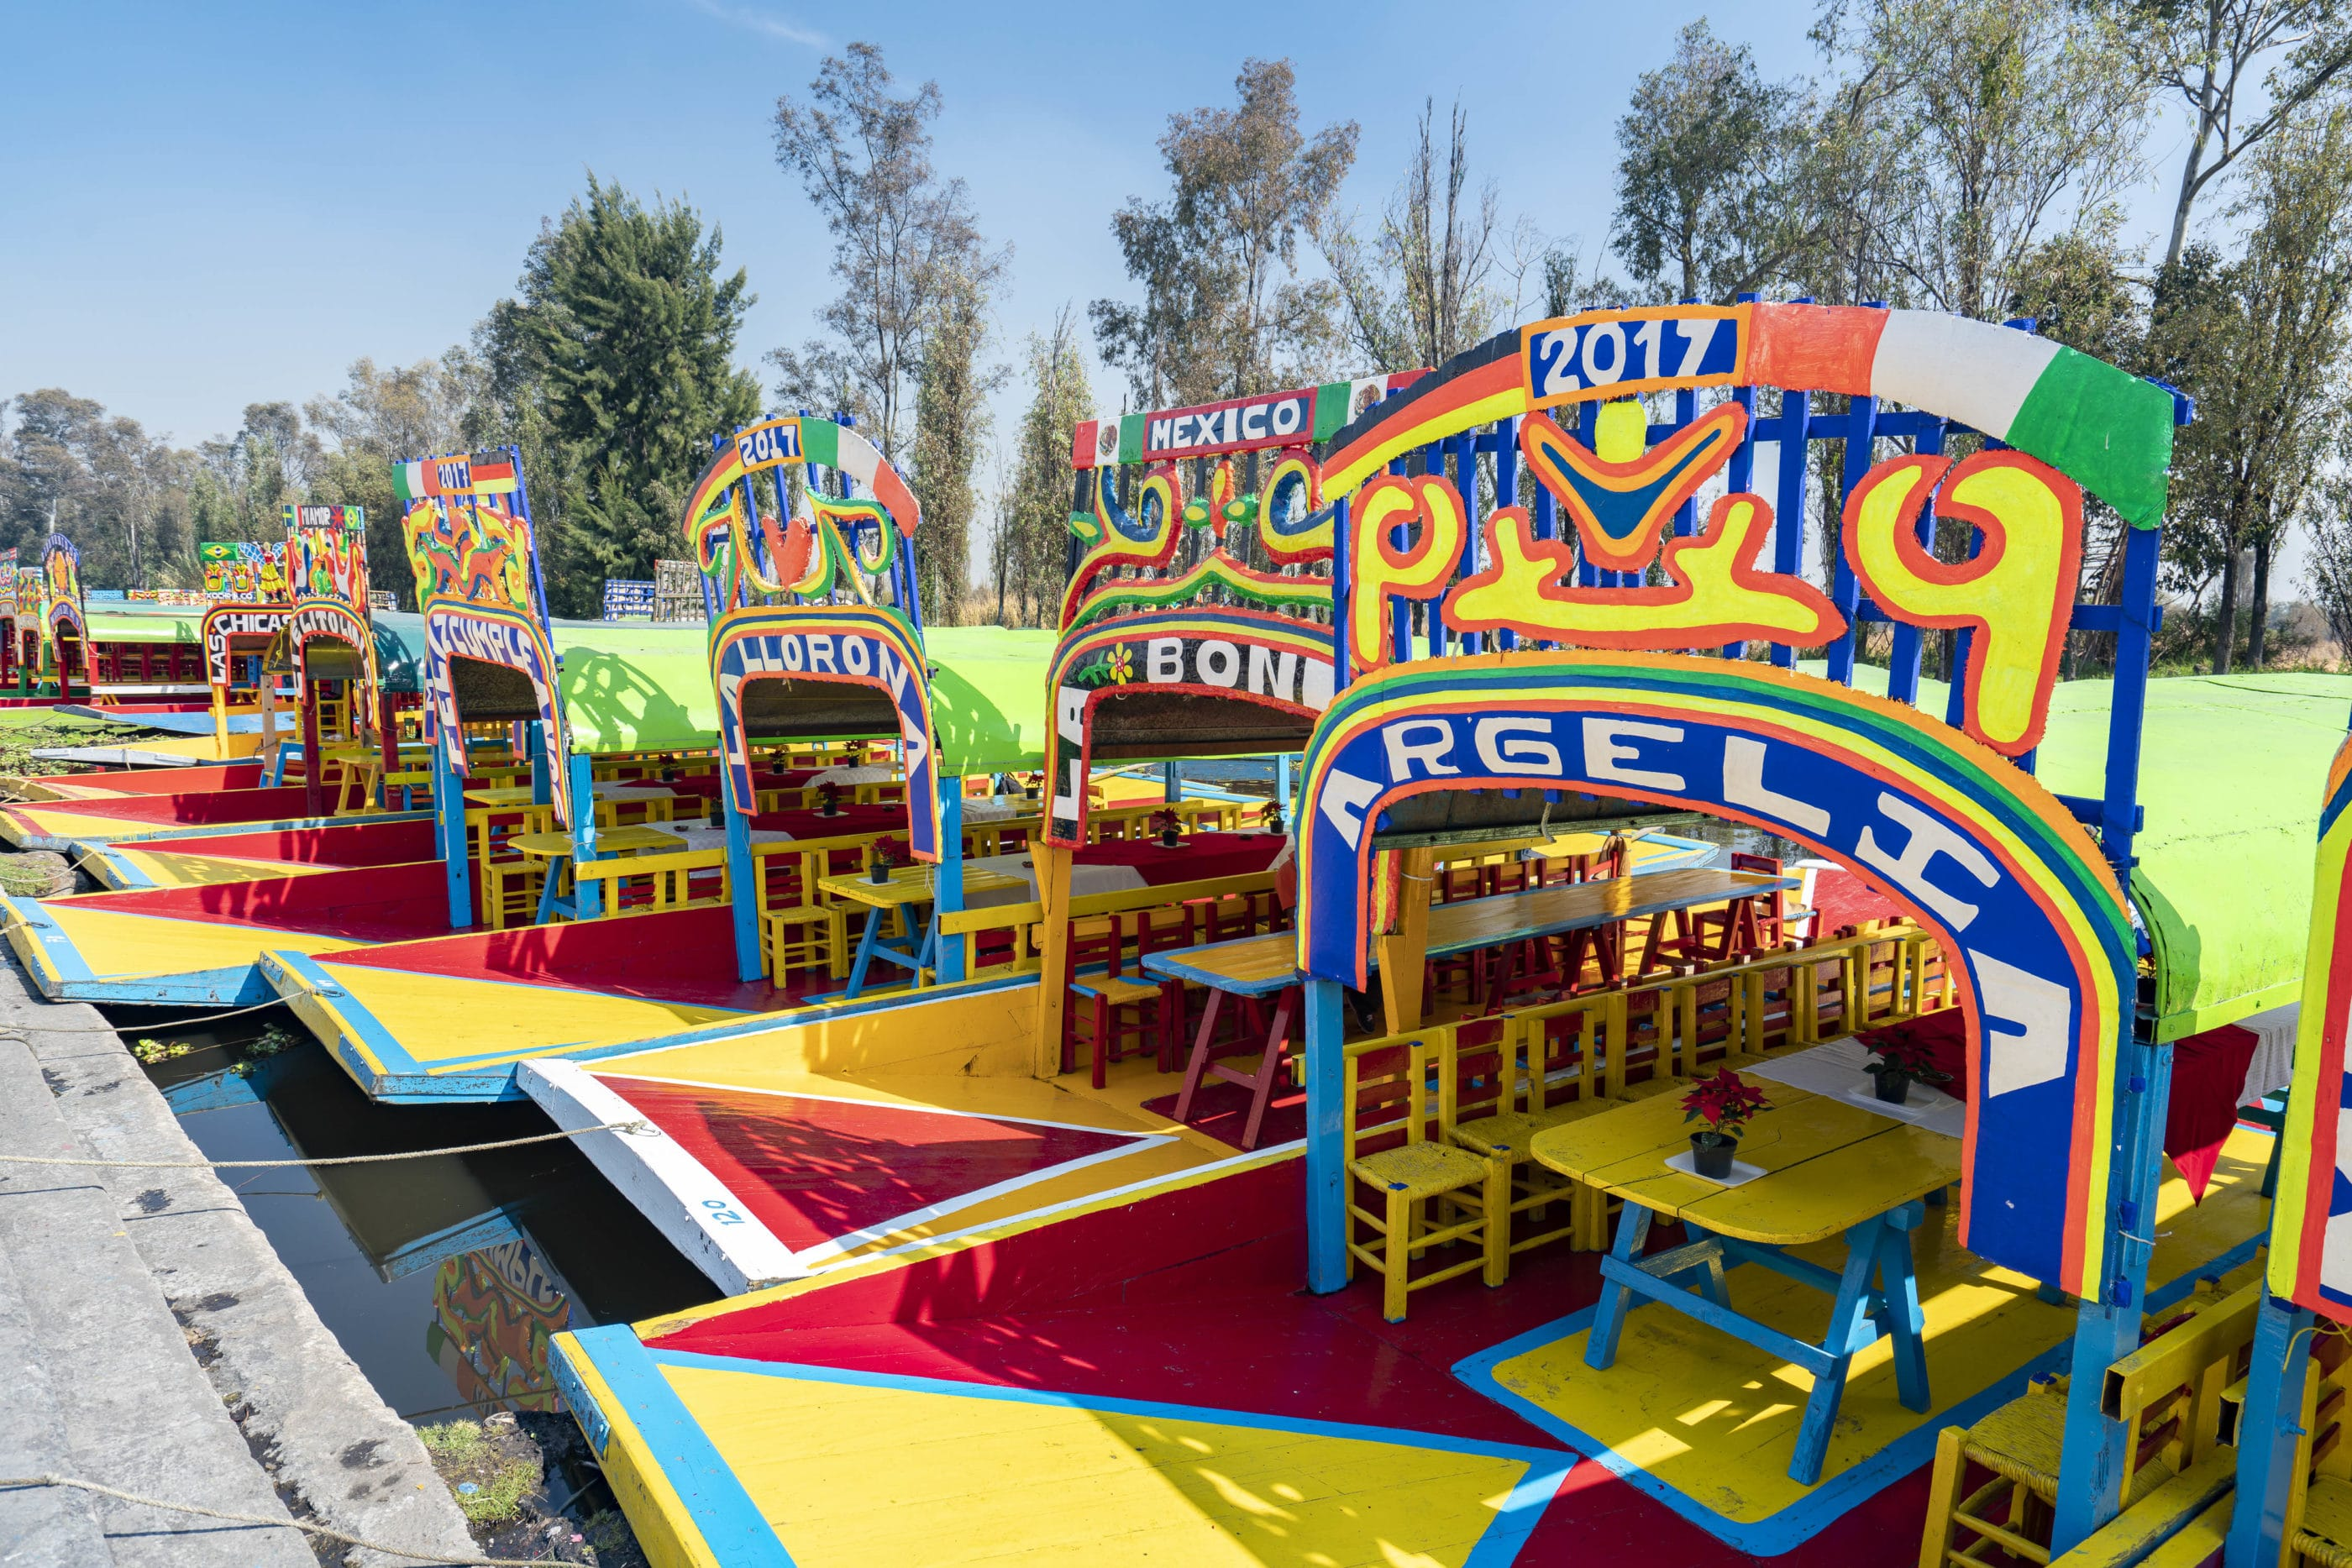 Colorful trajinera boats lined up next to each other on the water at Xochimilco.